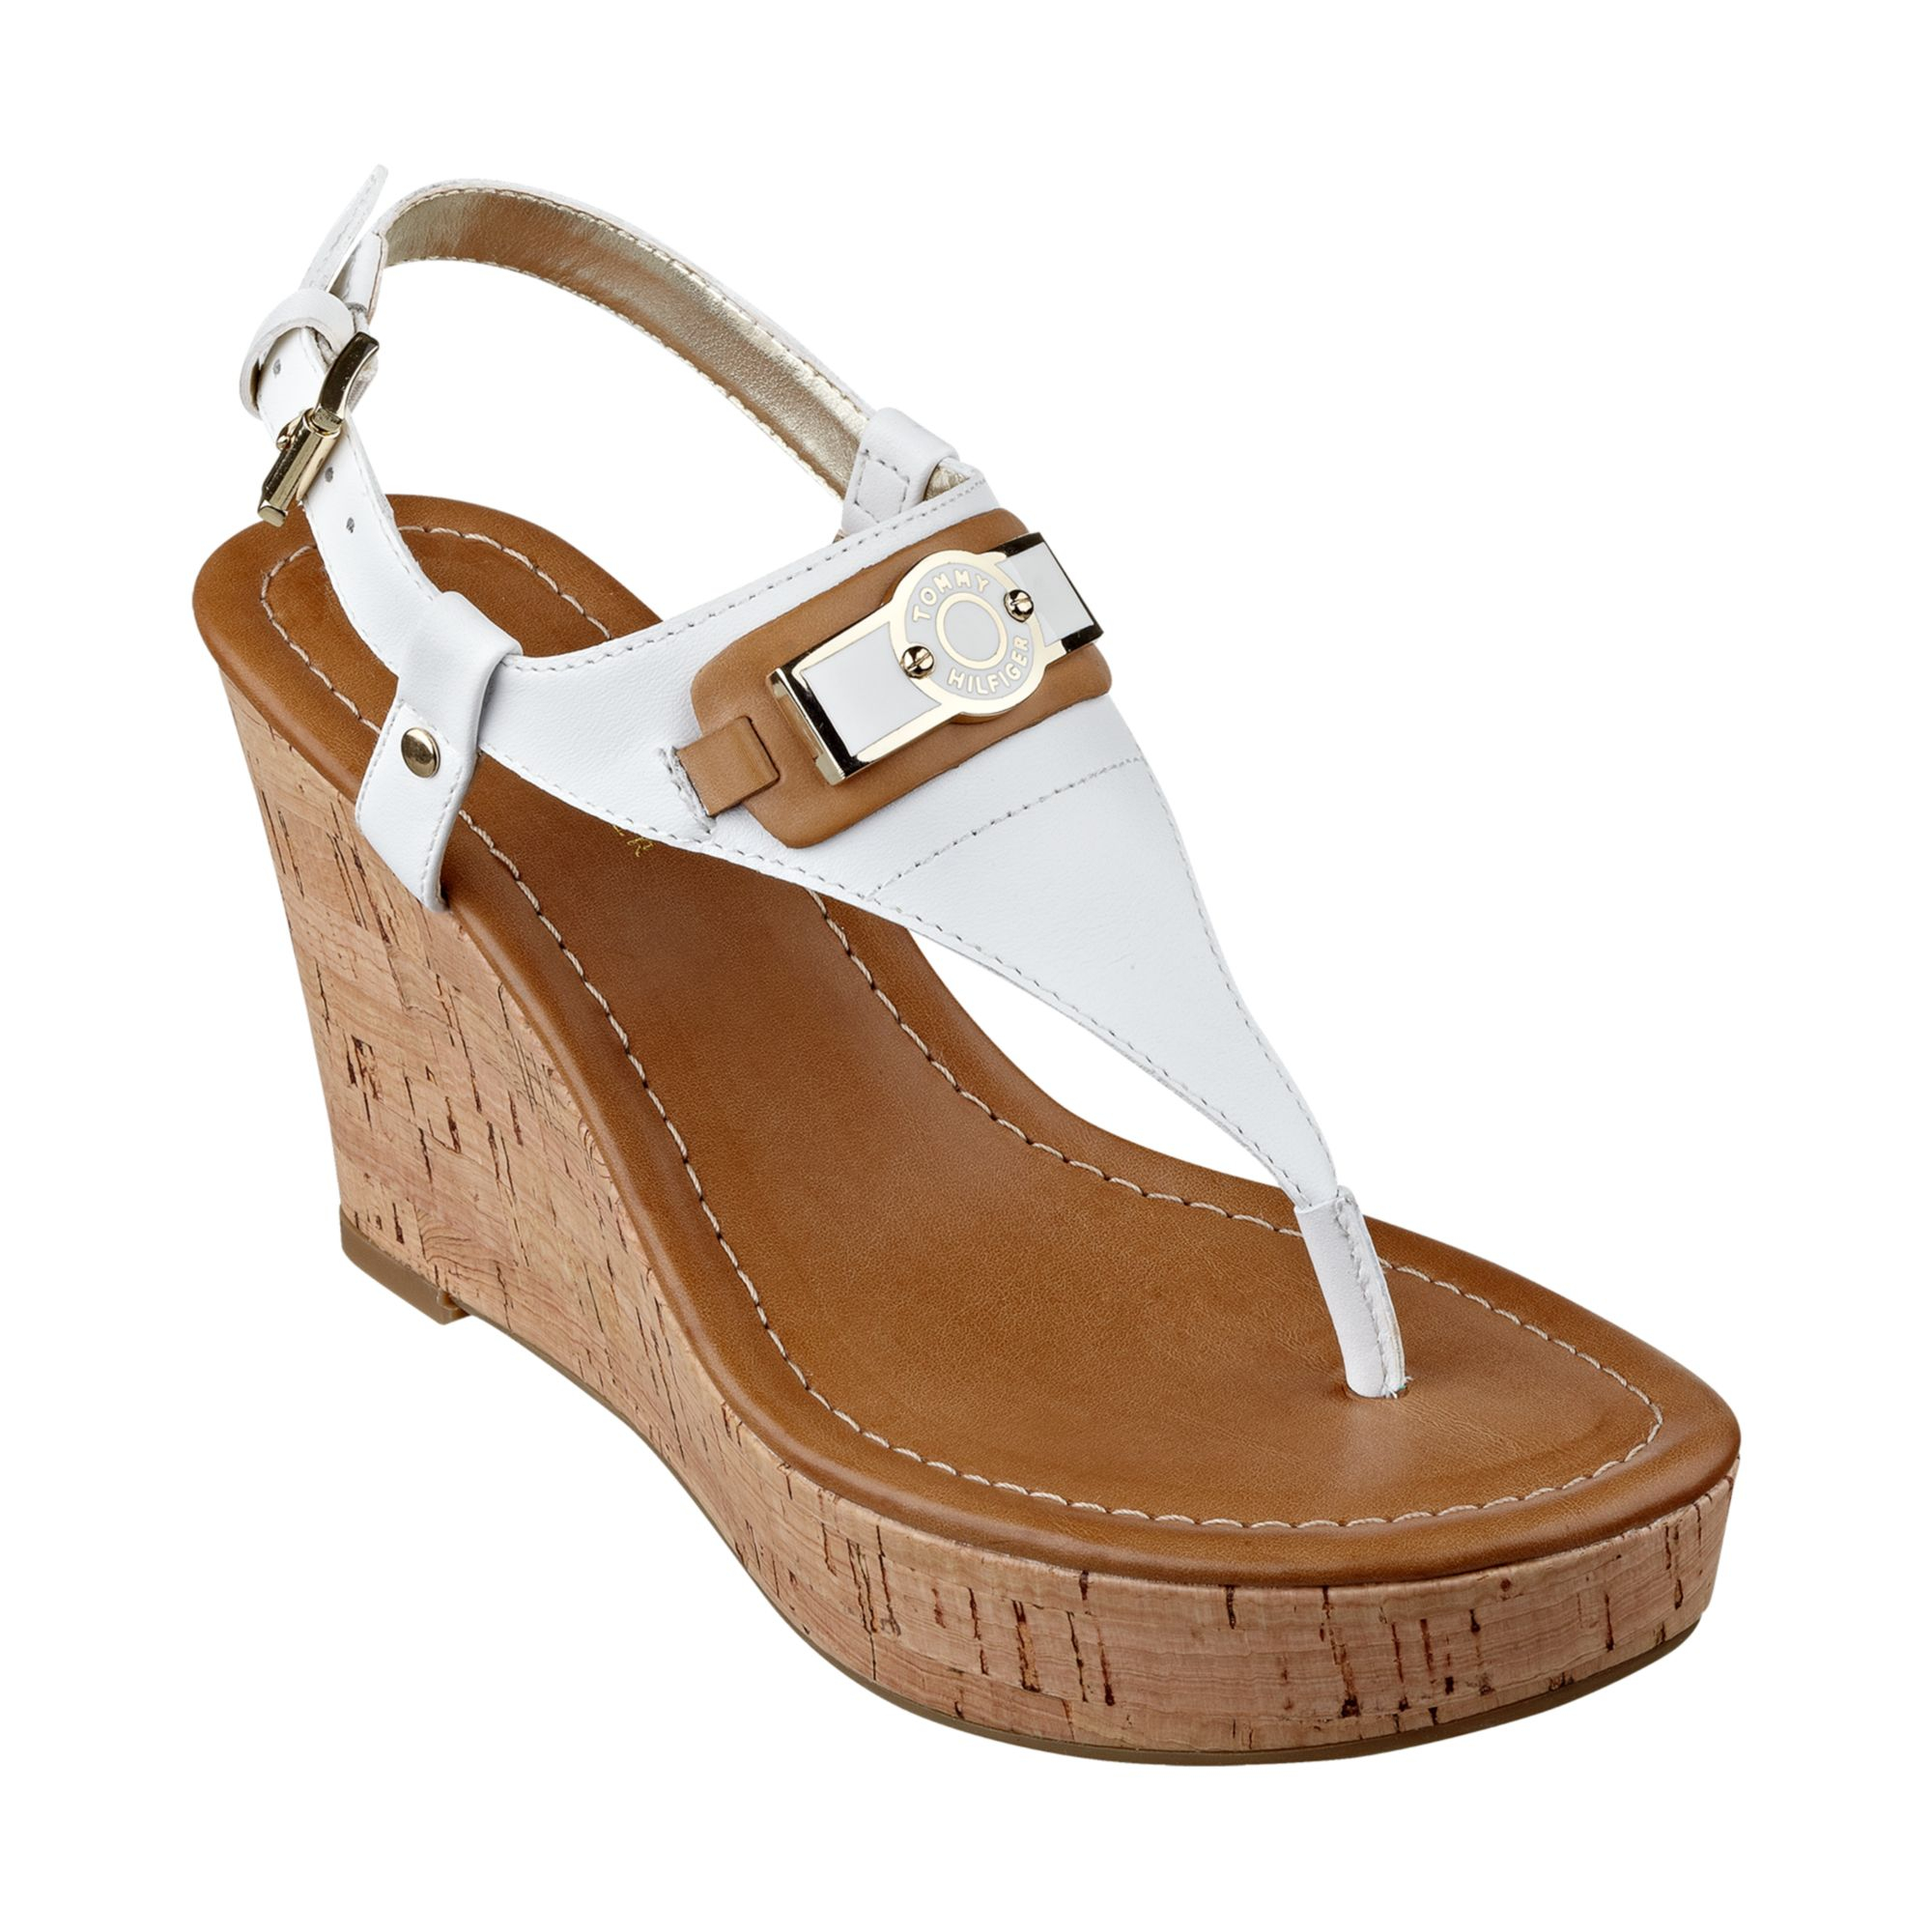 Lyst - Tommy Hilfiger Womens Monor Platform Wedge Thong Sandals in White